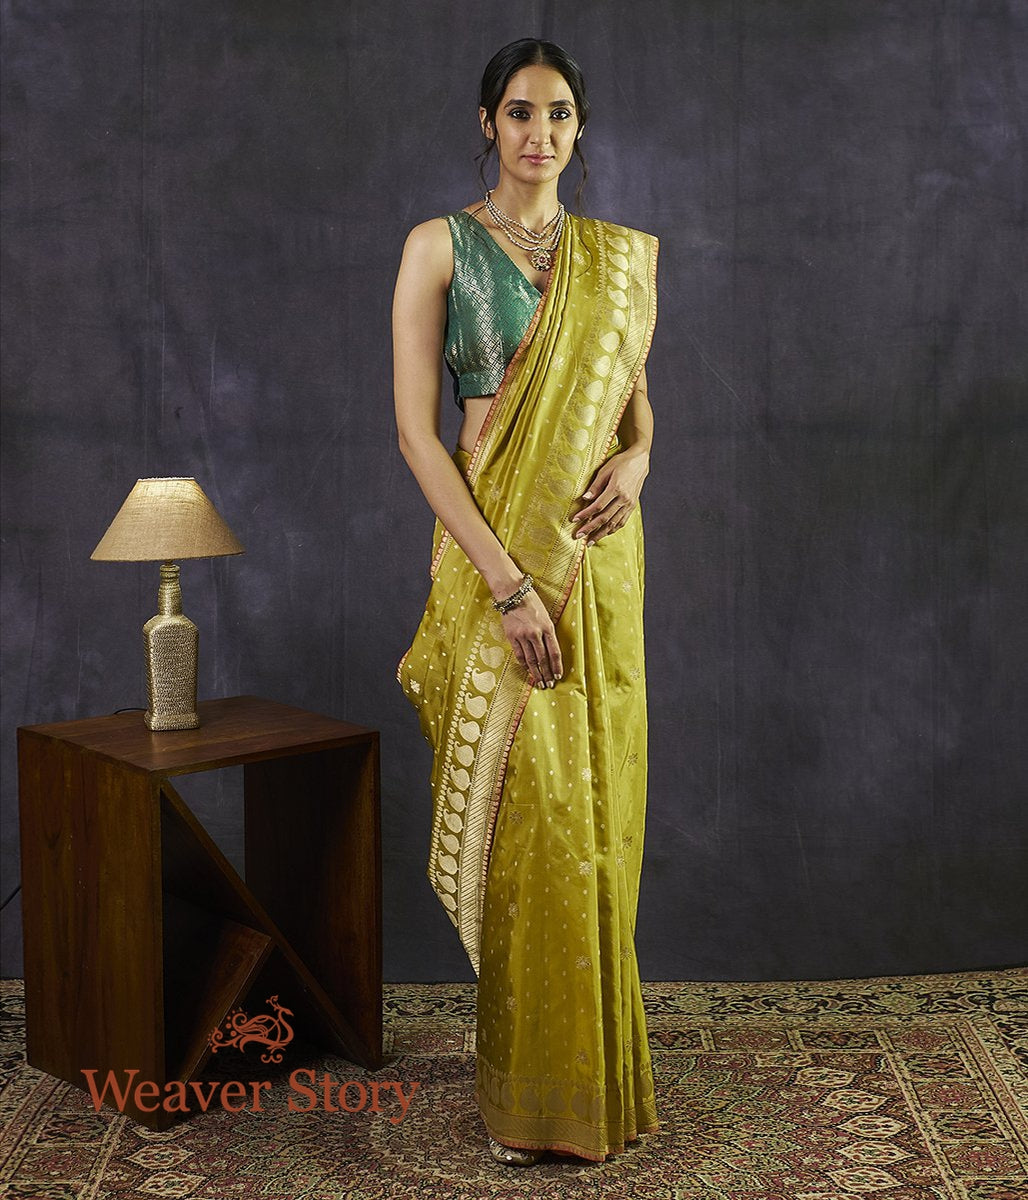 Handwoven Lime Green Kadhwa Floral Boota Saree with Paisley Border